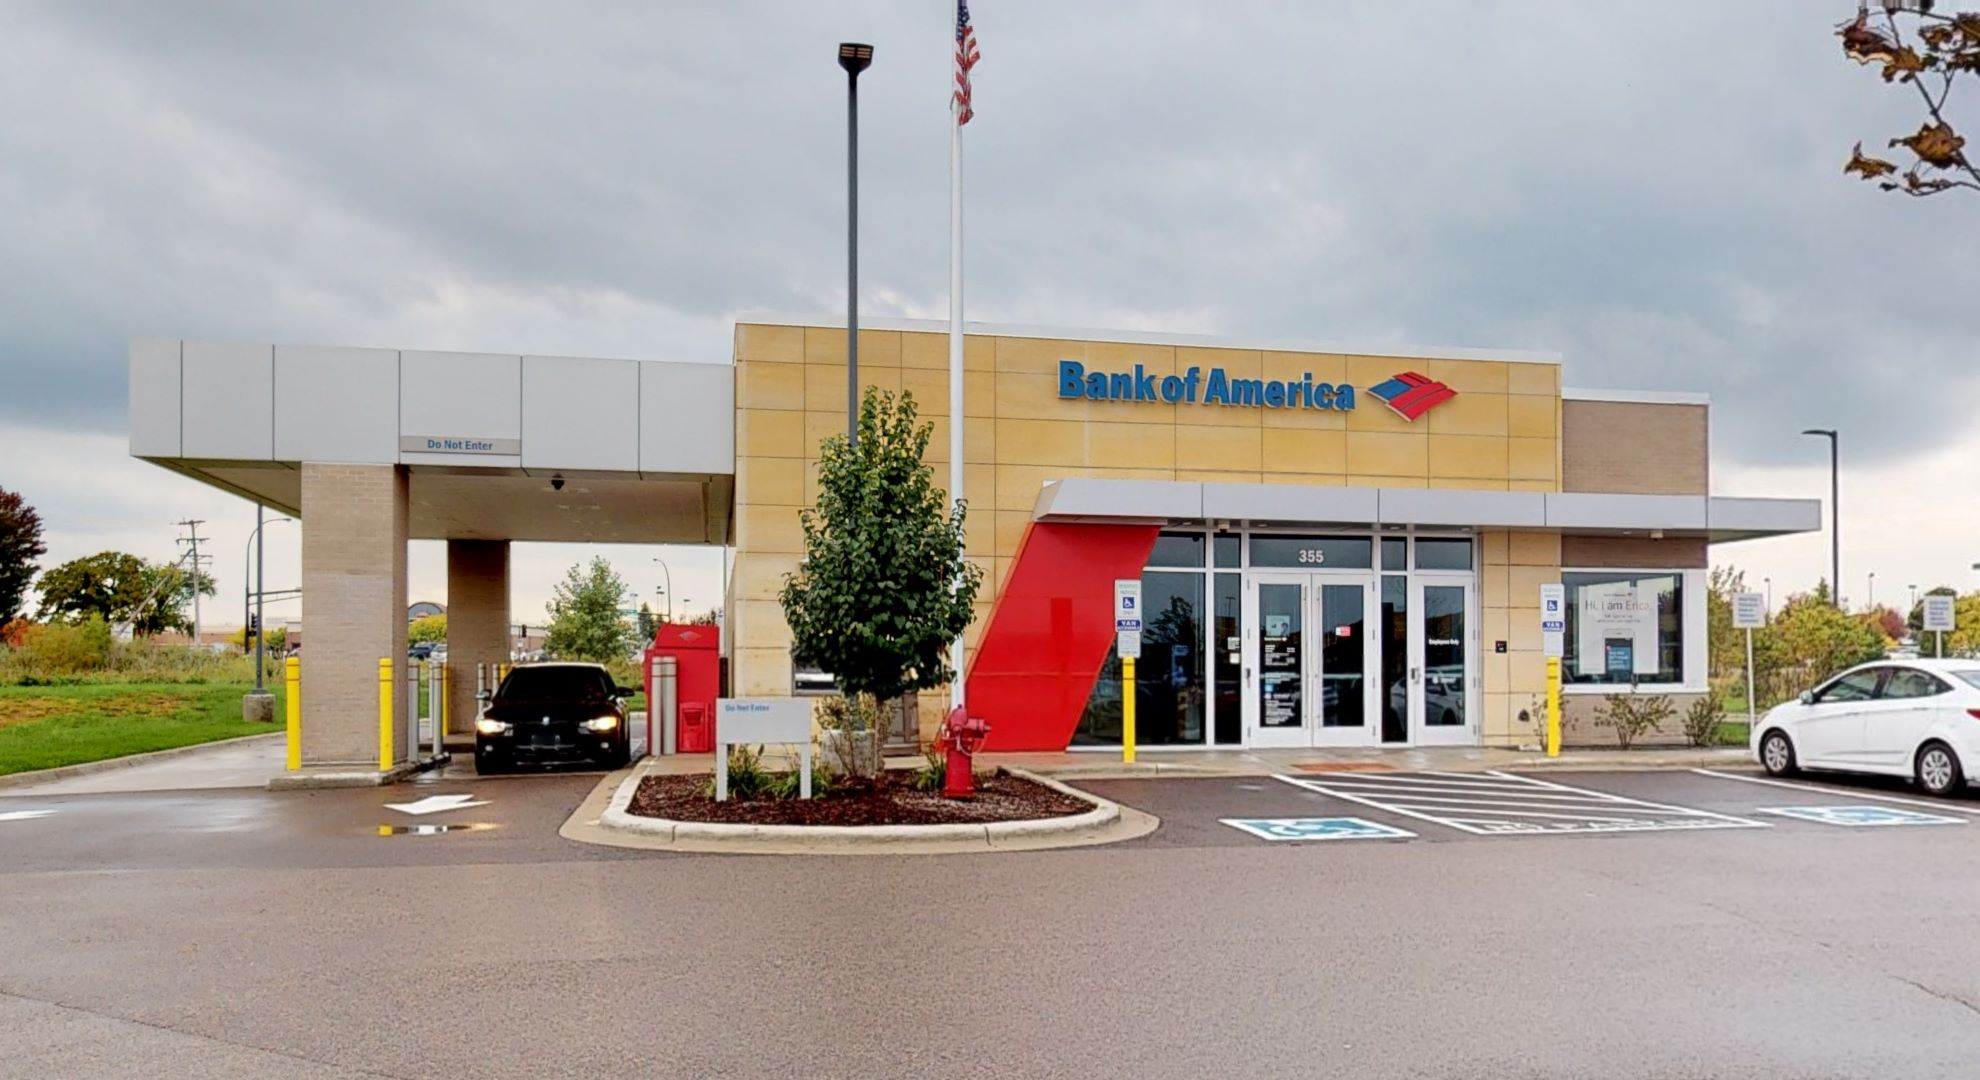 Bank of America financial center with drive-thru ATM | 355 Radio Dr, Woodbury, MN 55125